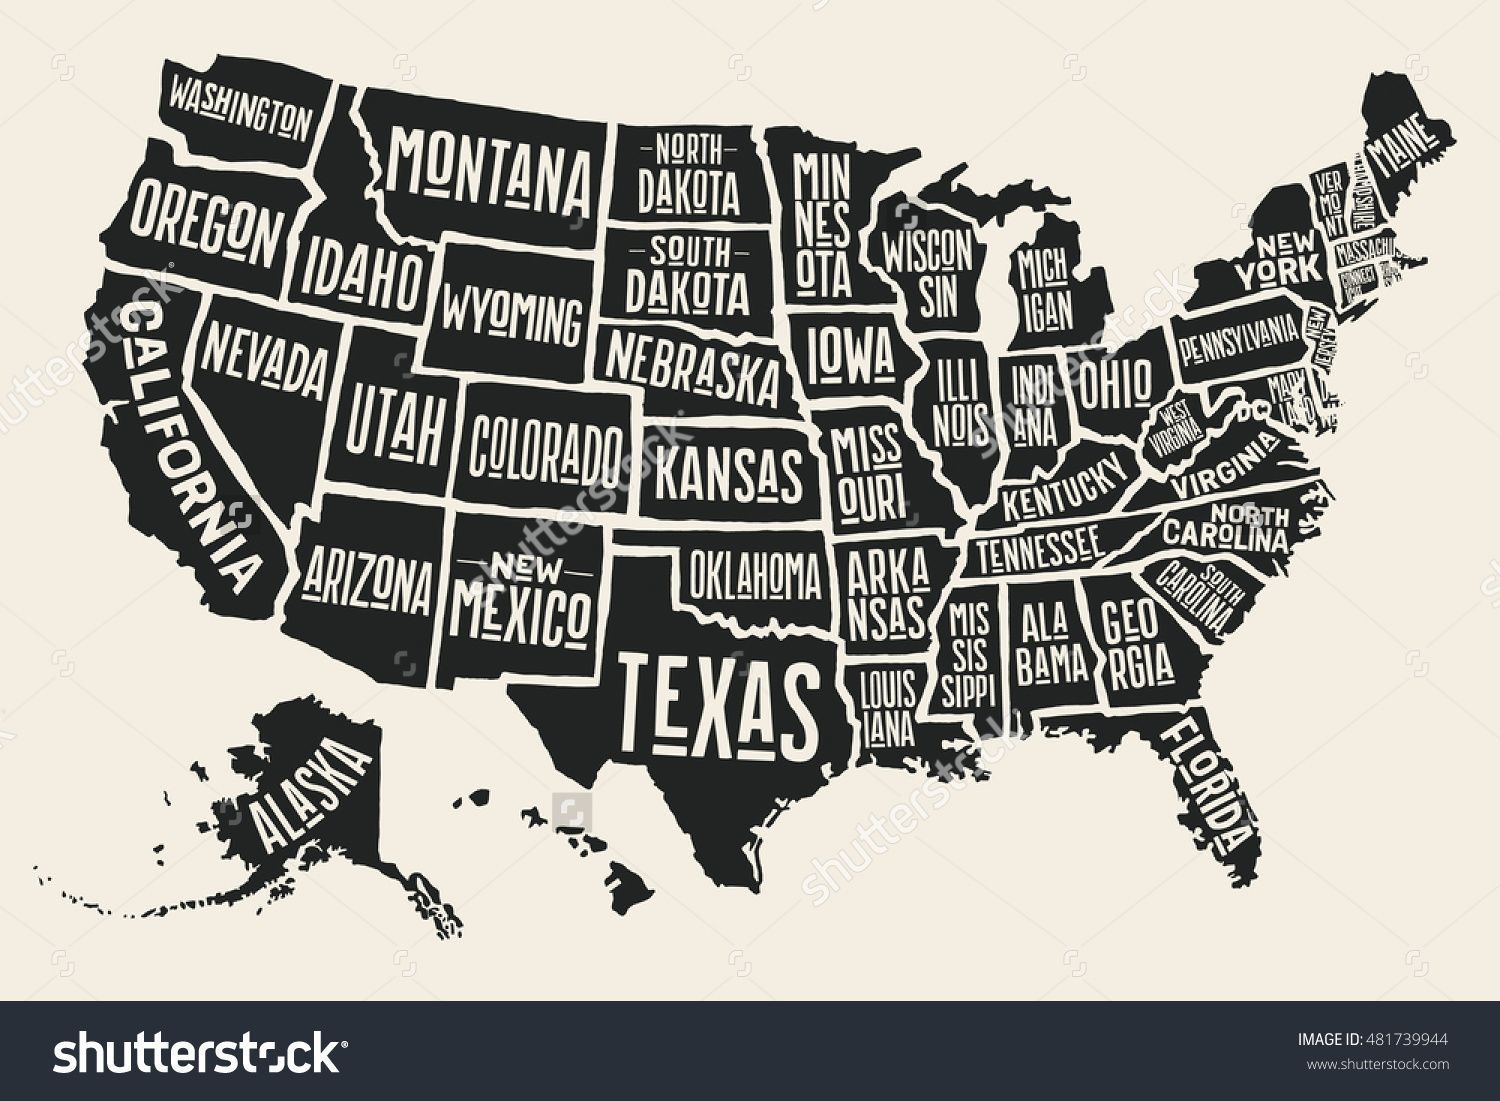 Line Art Usa Map : Poster map of united states america with state names black and